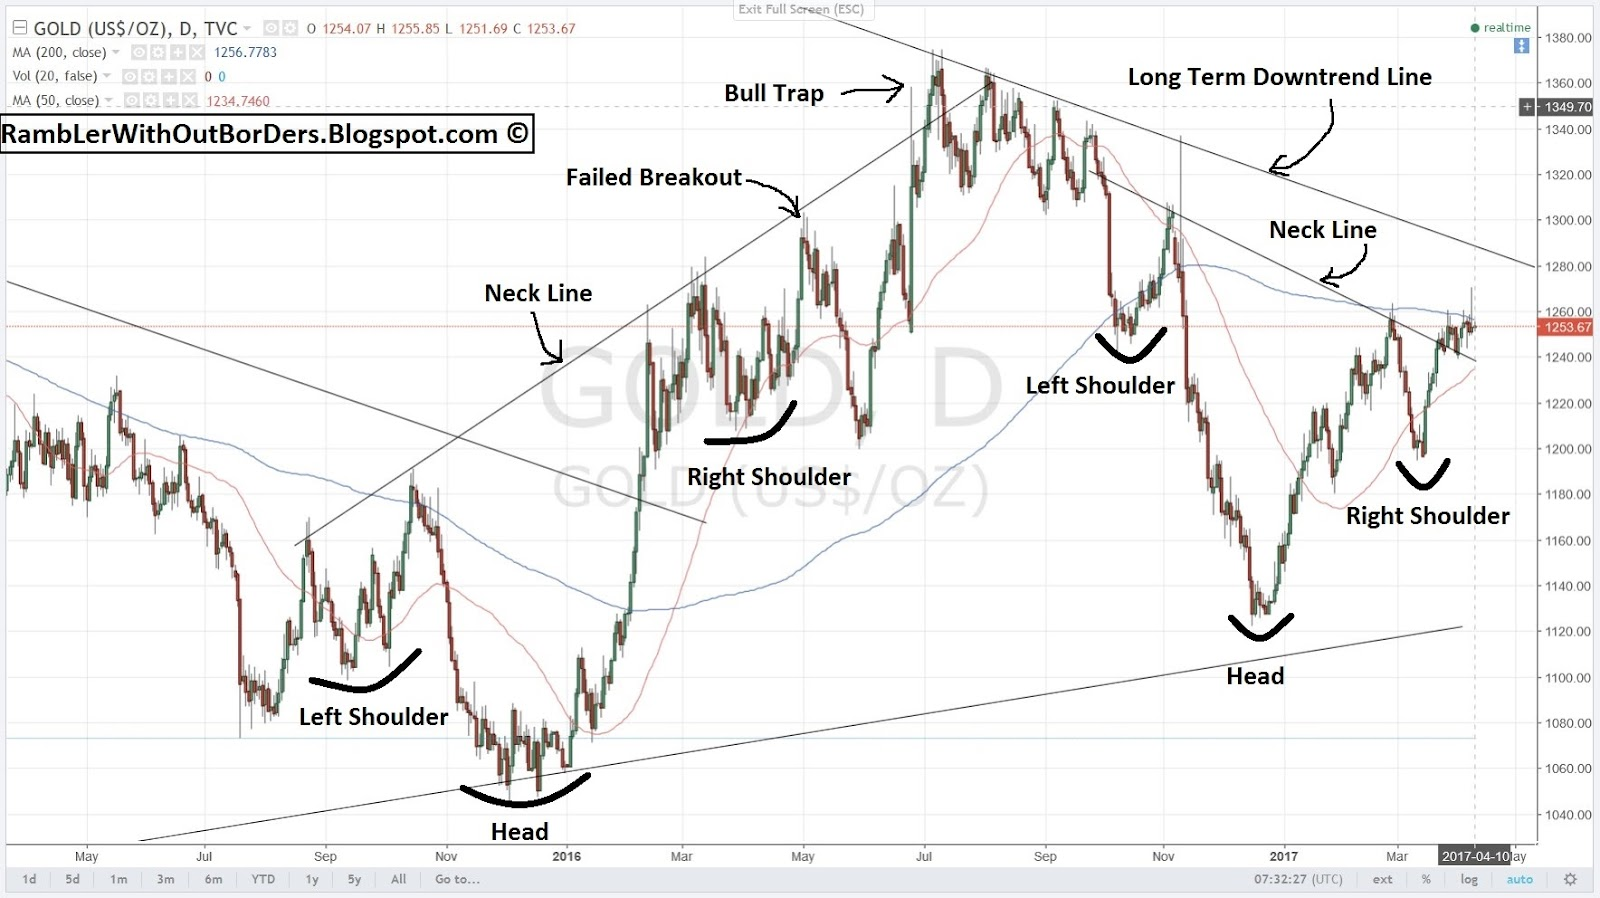 Spot gold chart showing 2 inverse head and shoulders formations back to back